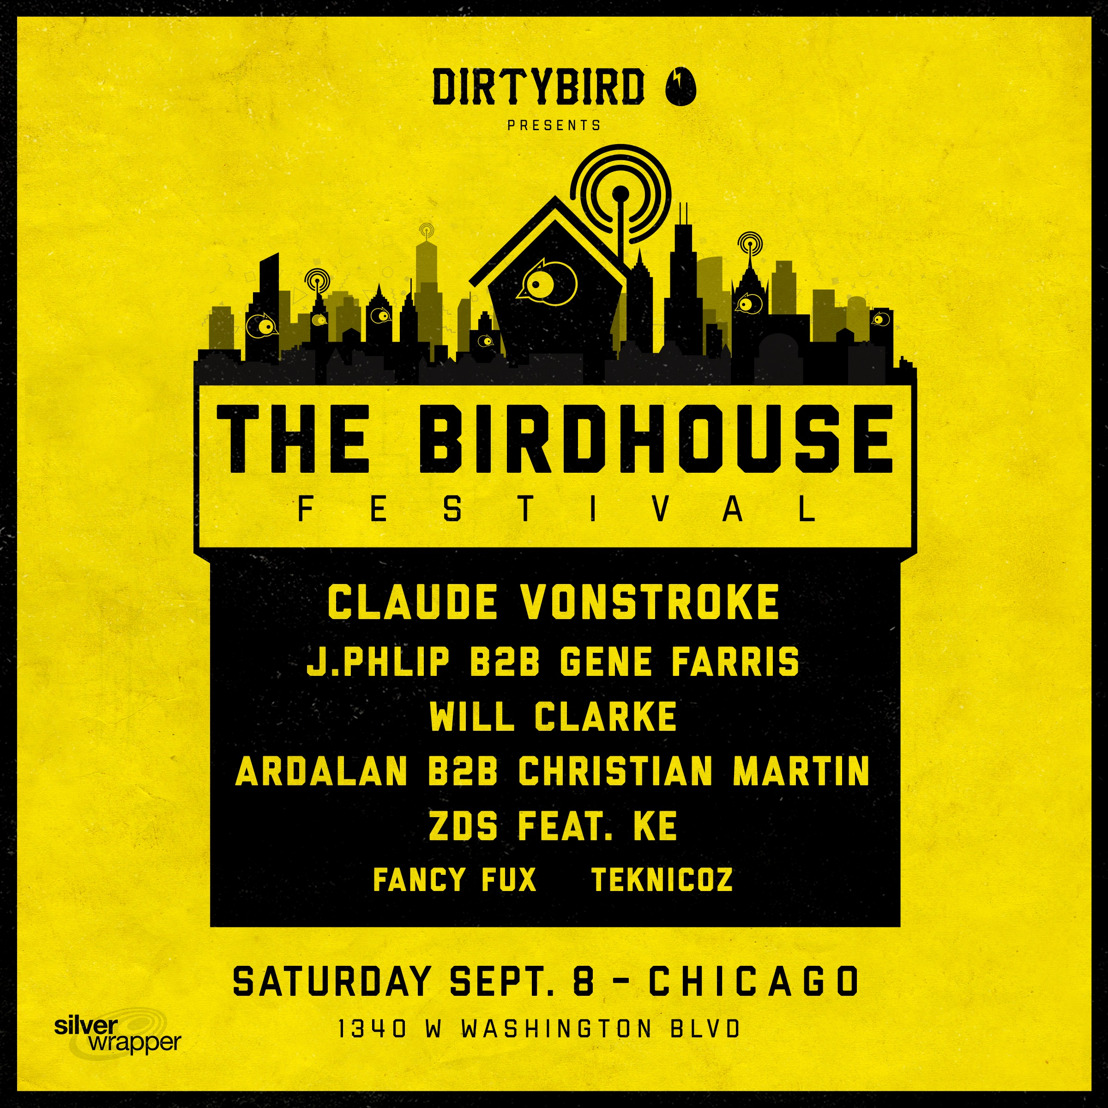 Dirtybird Announces Lineup for Inaugural Birdhouse Festival in Chicago